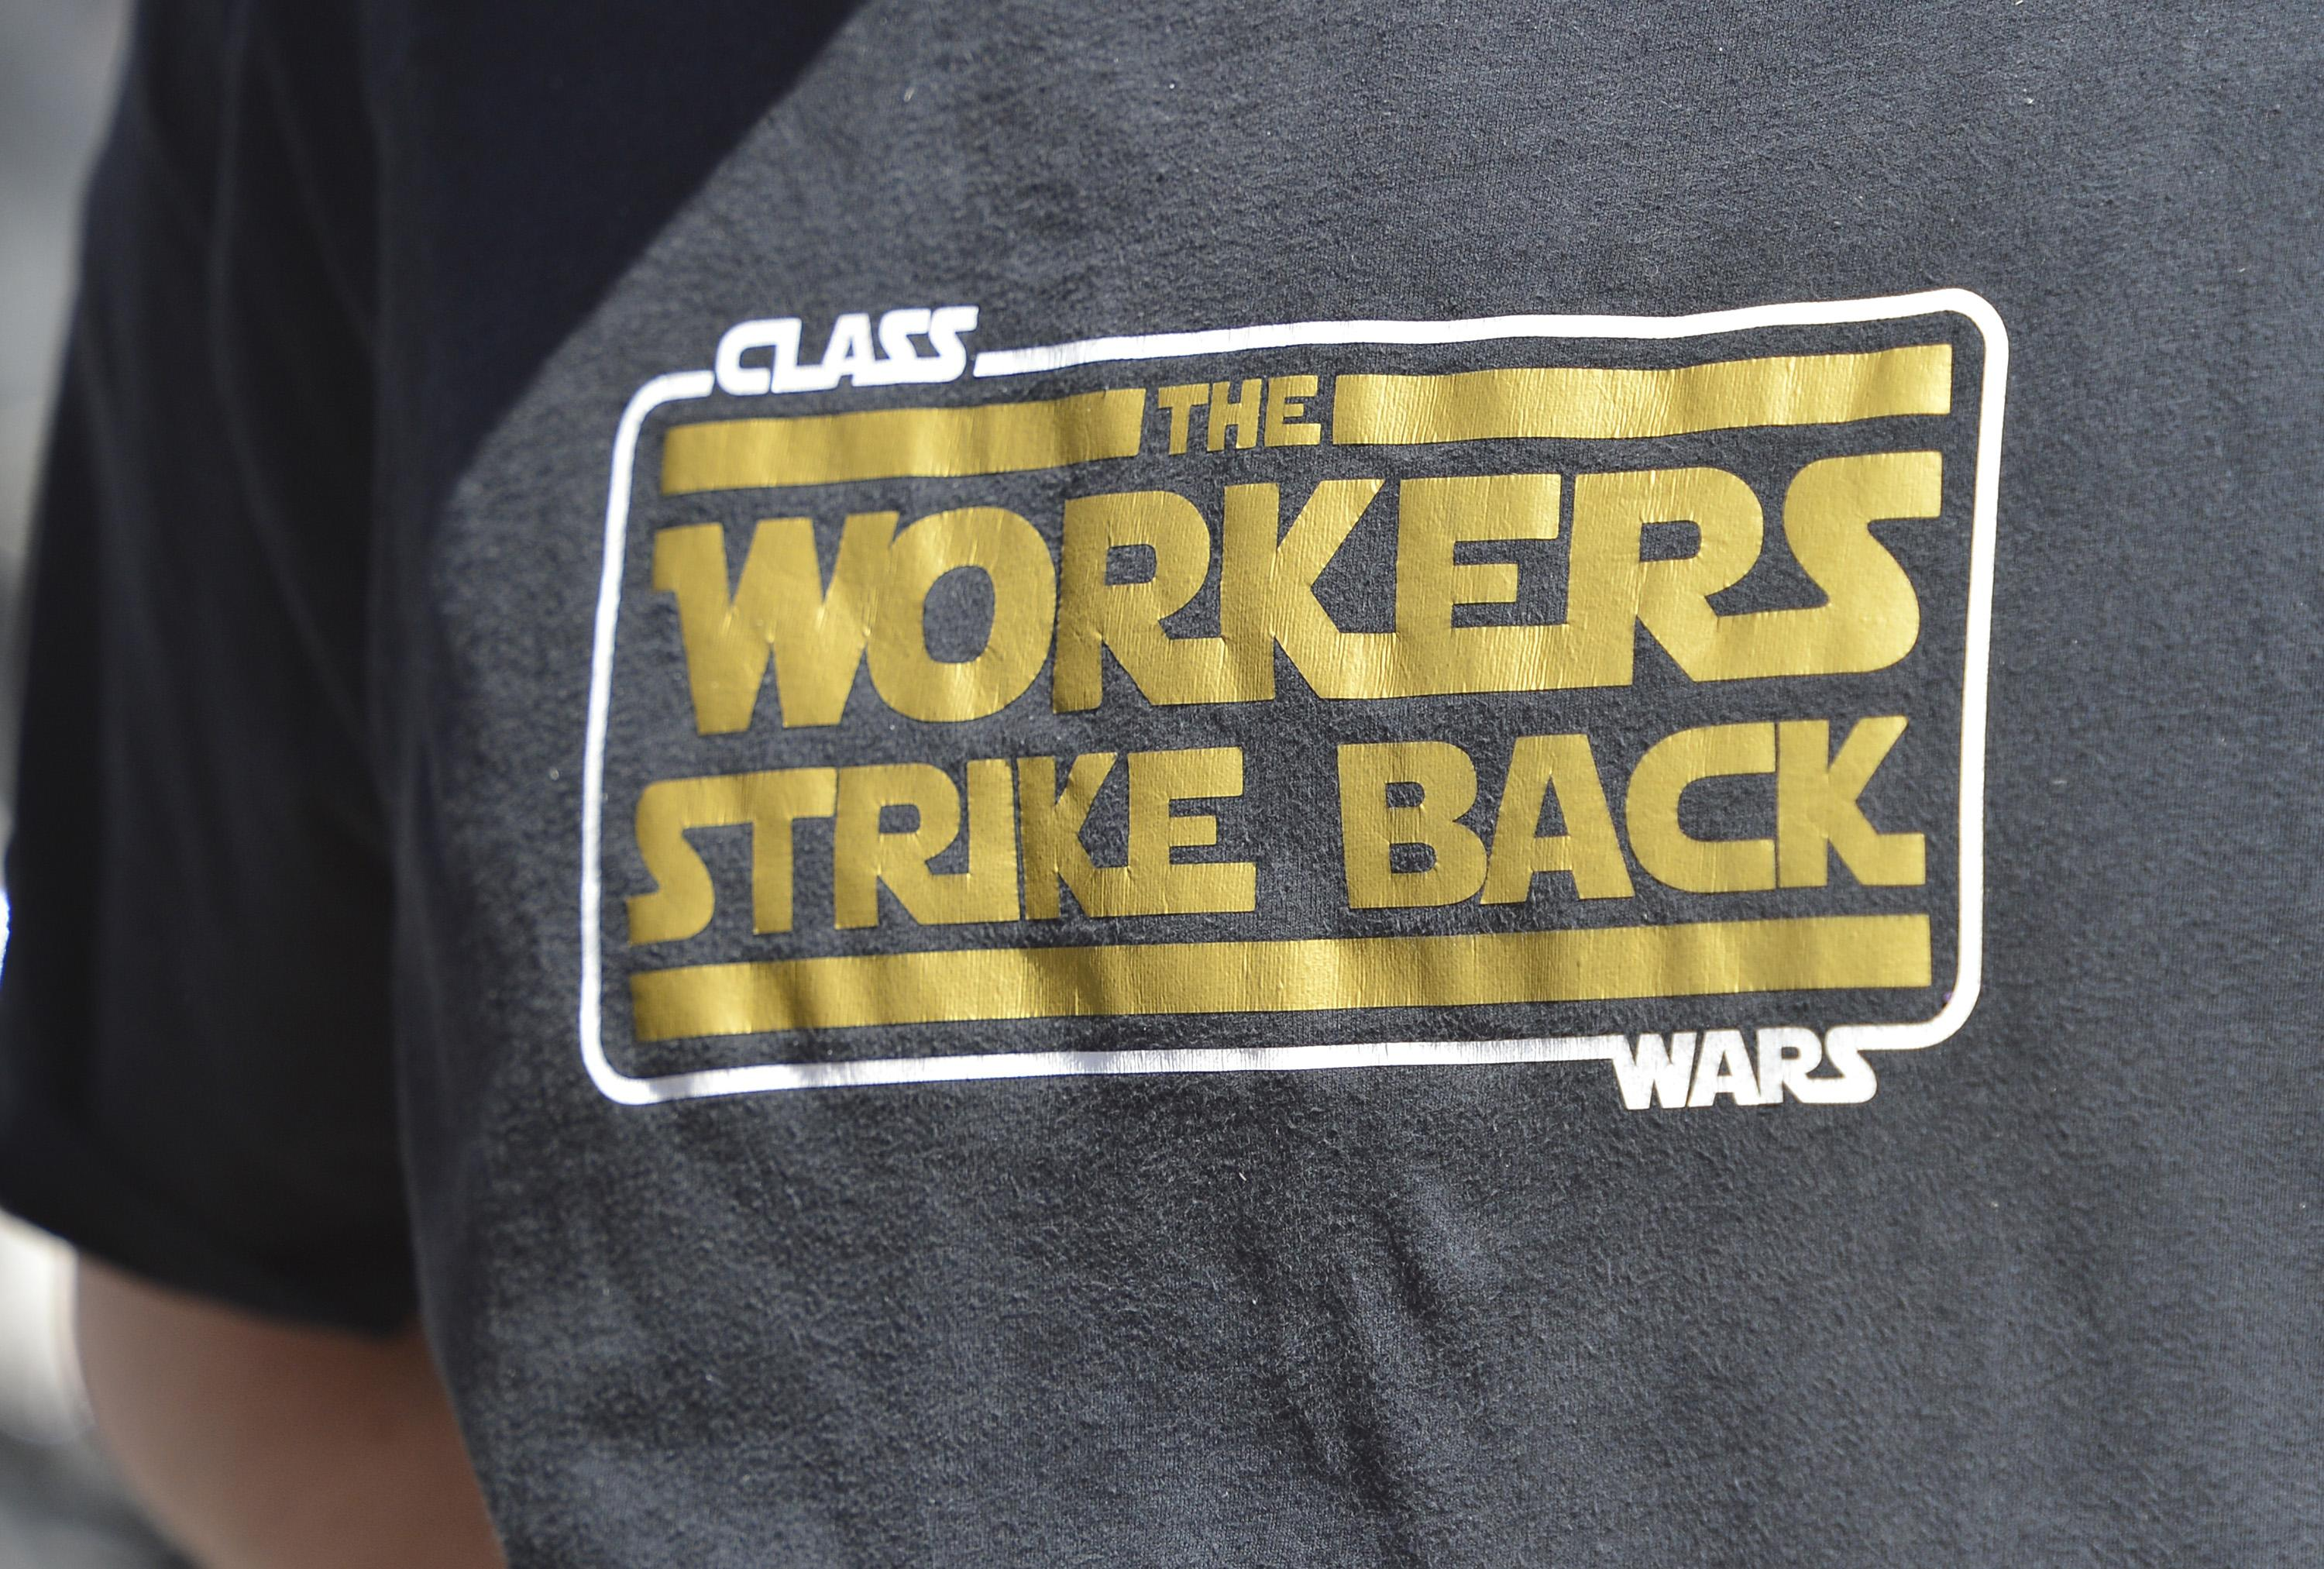 May Day Star Wars t-shirt